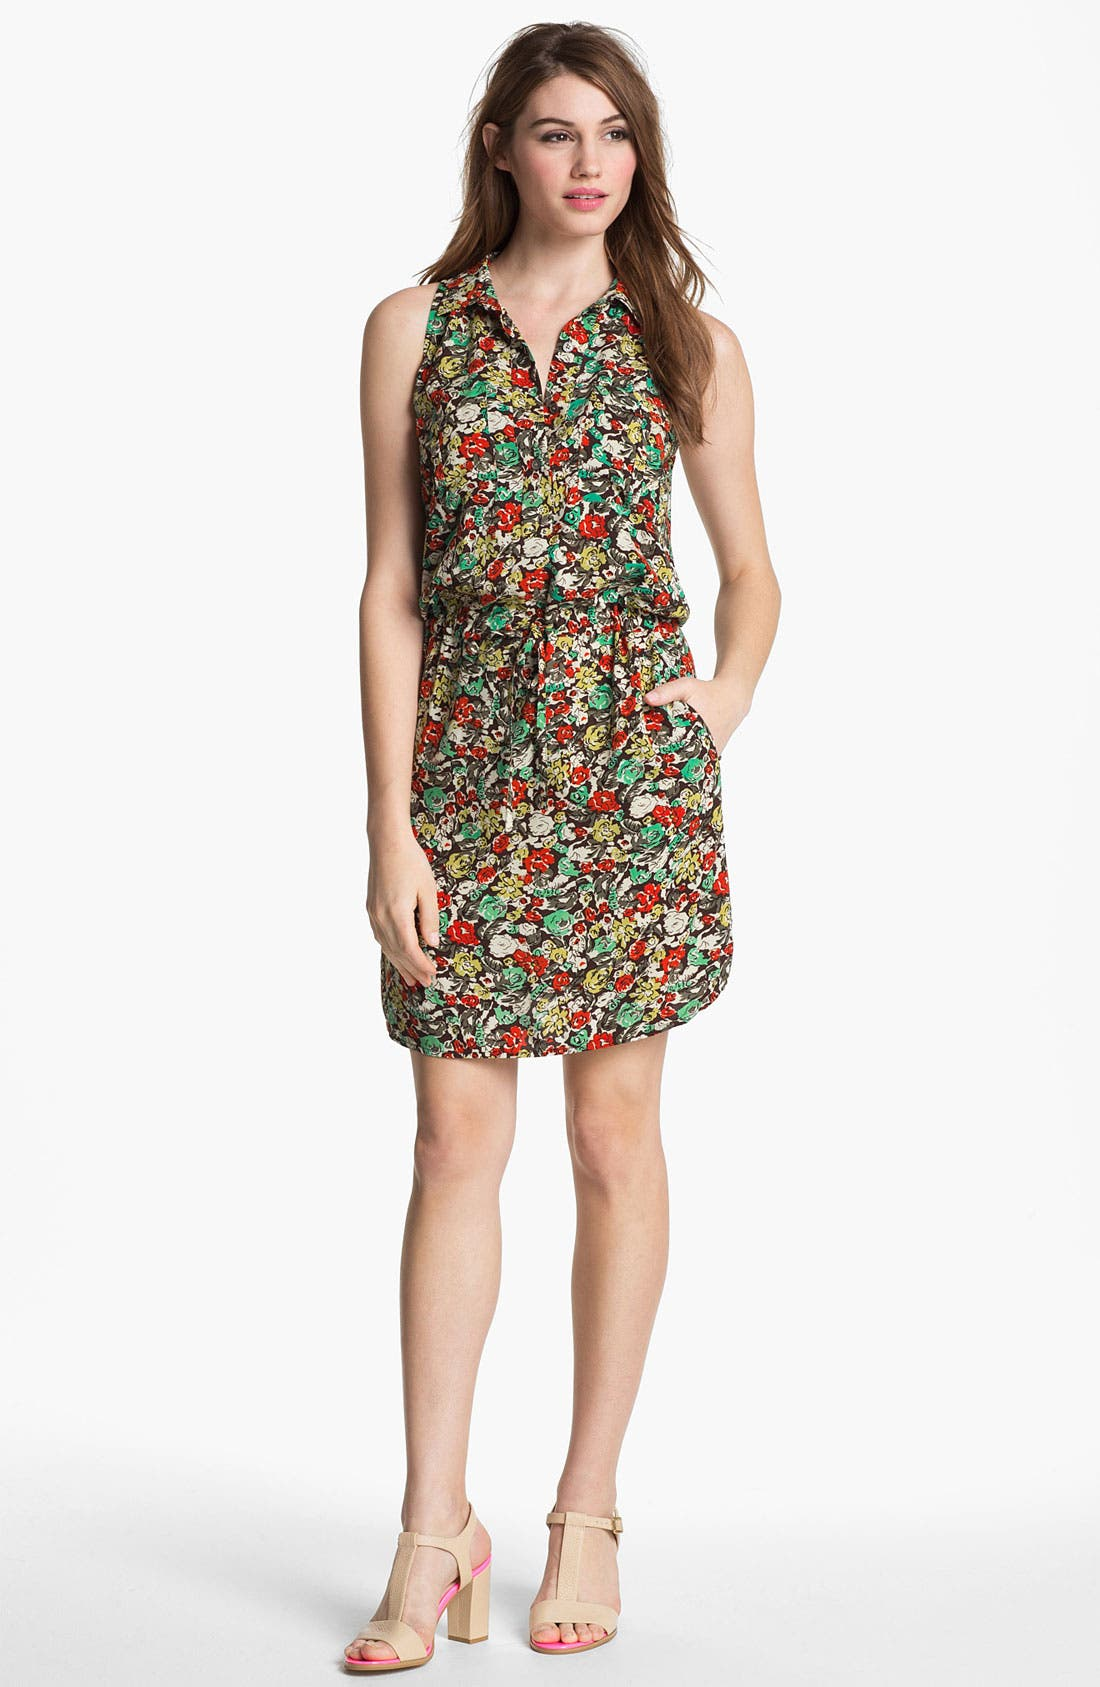 Alternate Image 1 Selected - Two by Vince Camuto 'Monaco' Print Sleeveless Shirtdress